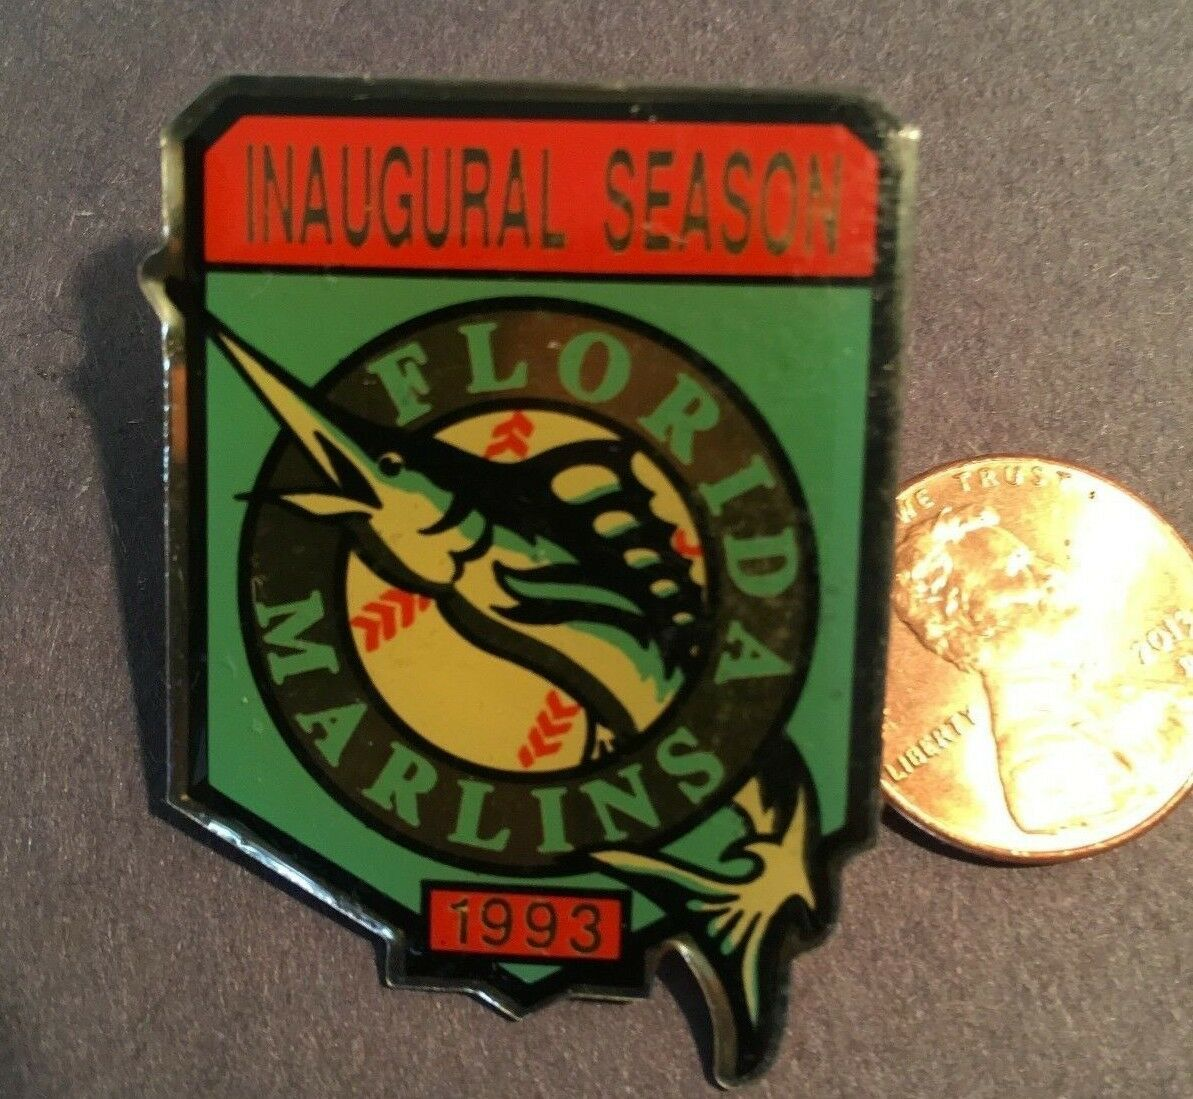 Primary image for Florida Marlins Broche - 1993 Inaugurale Saison